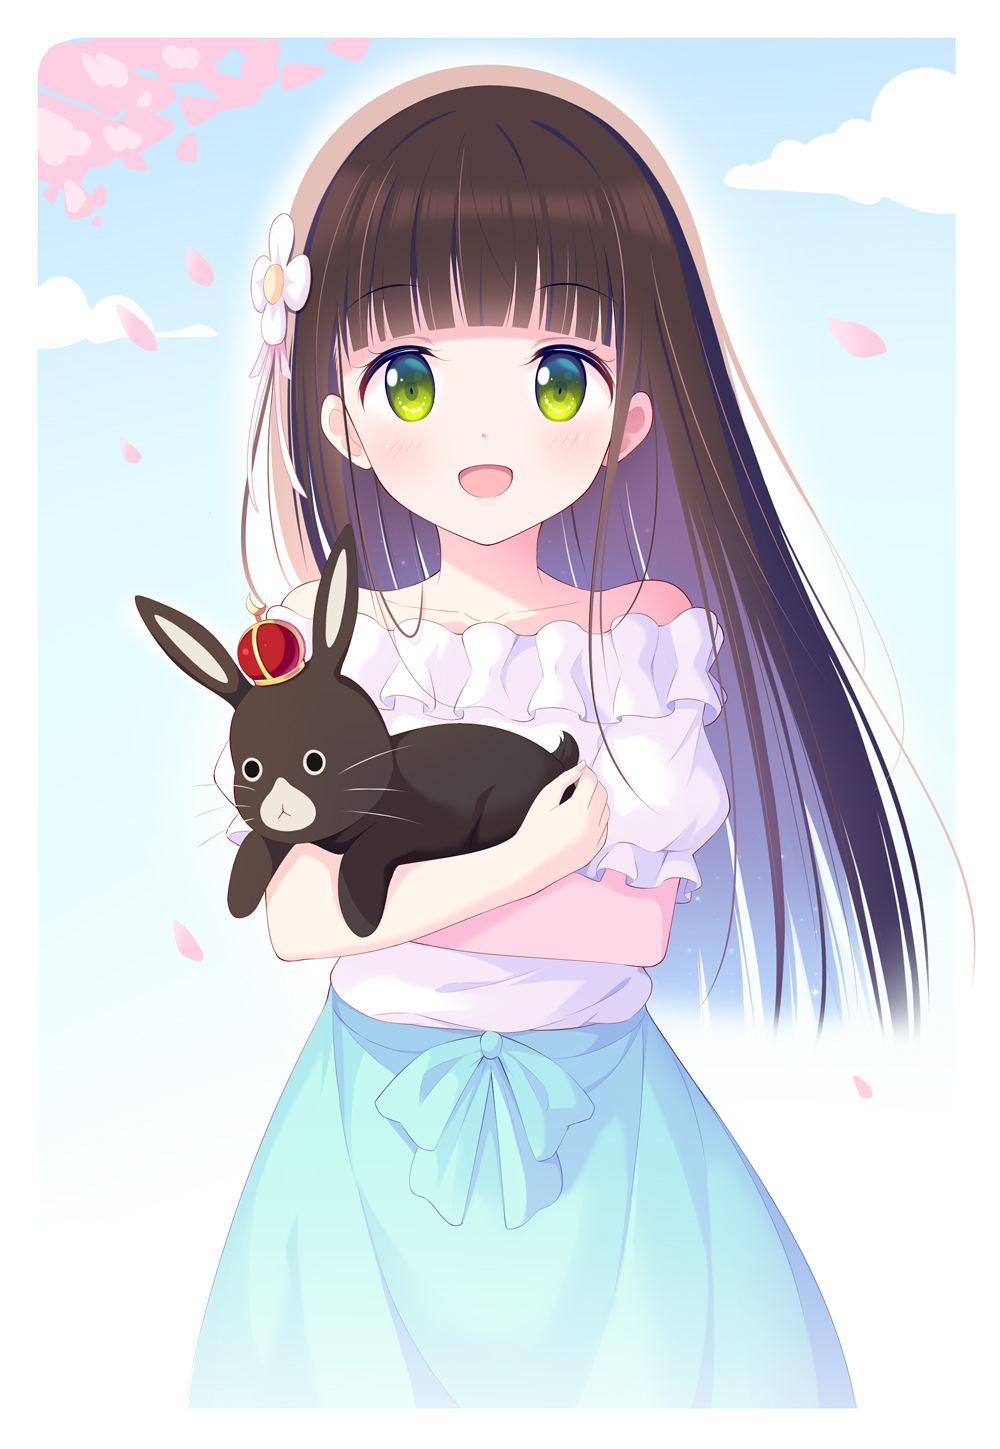 :d animal anko_(gochiusa) bangs blue_bow blue_skirt blunt_bangs bow brown_hair cherry_blossoms collarbone eyebrows_visible_through_hair flower gochuumon_wa_usagi_desu_ka? green_eyes hair_flower hair_ornament highres hime_cut holding holding_animal kagami_(galgamesion) long_hair looking_at_viewer off-shoulder_shirt off_shoulder open_mouth shiny shiny_hair shirt short_sleeves skirt smile spring_(season) straight_hair ujimatsu_chiya white_flower white_shirt